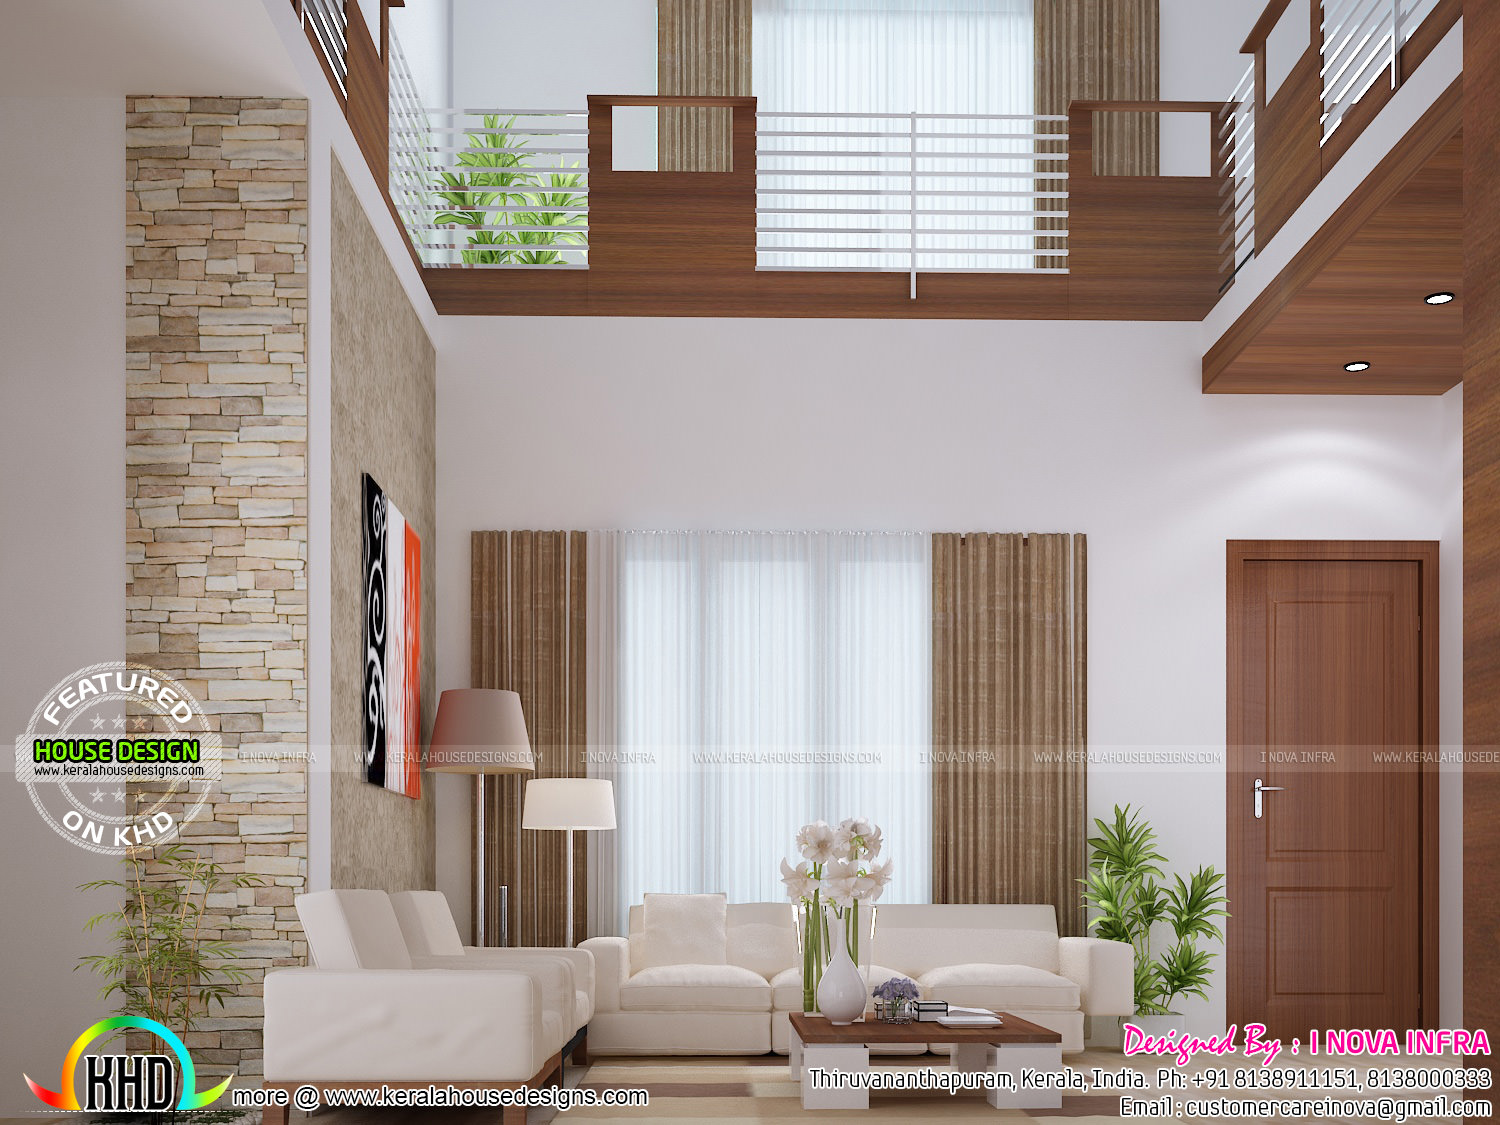 Balcony dining bedroom and staircase interior kerala for Balcony interior design